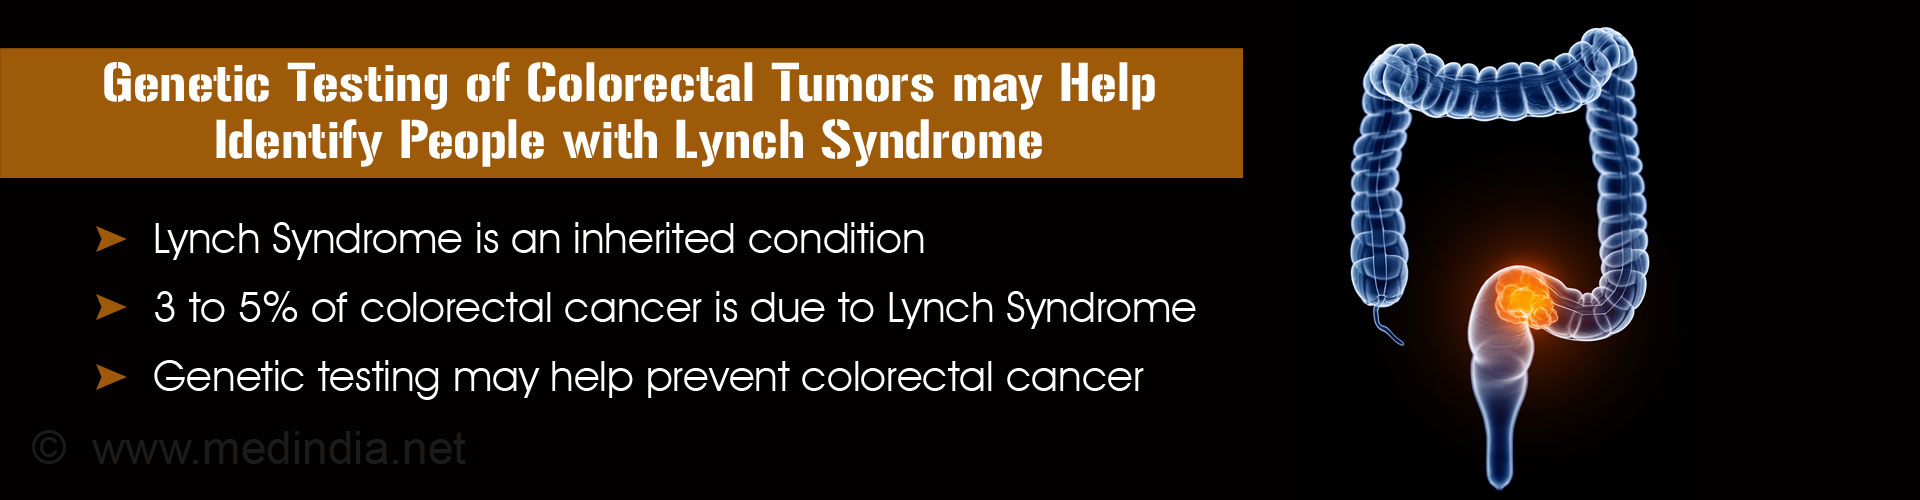 Genetic Testing for Lynch Syndrome Helps Identify Colorectal Cancer Risk